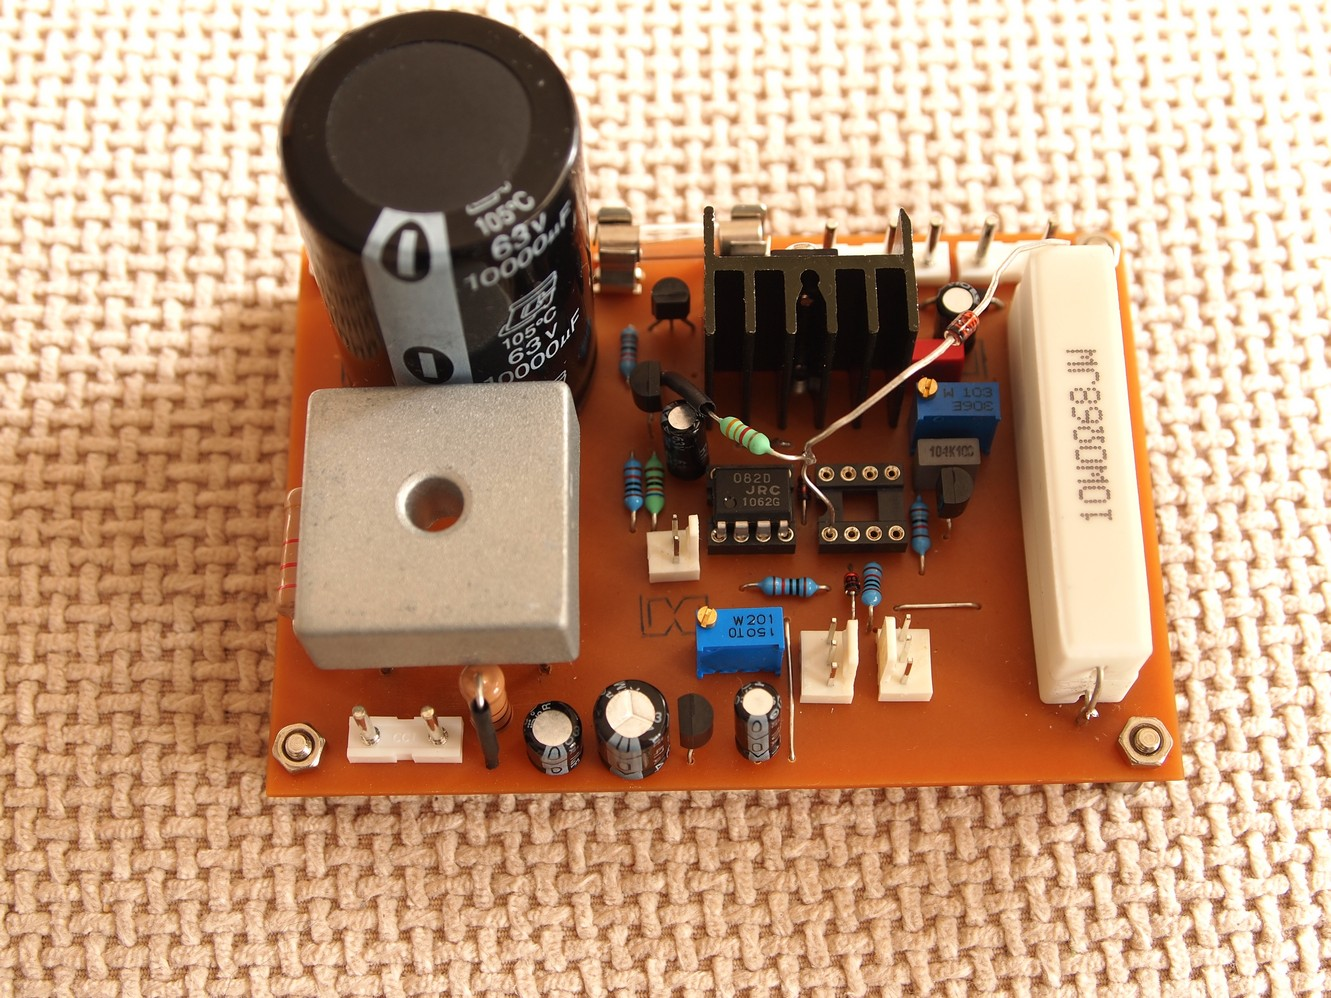 Power Supply Using Lm 317 Lm337 Electronic Circuits And Diagram Diyfan Adjustable Lab Take Two P4 Adjusts The Maximum Output Voltage After Final Adjustment We May Replace Trimmers With Standart Resistors